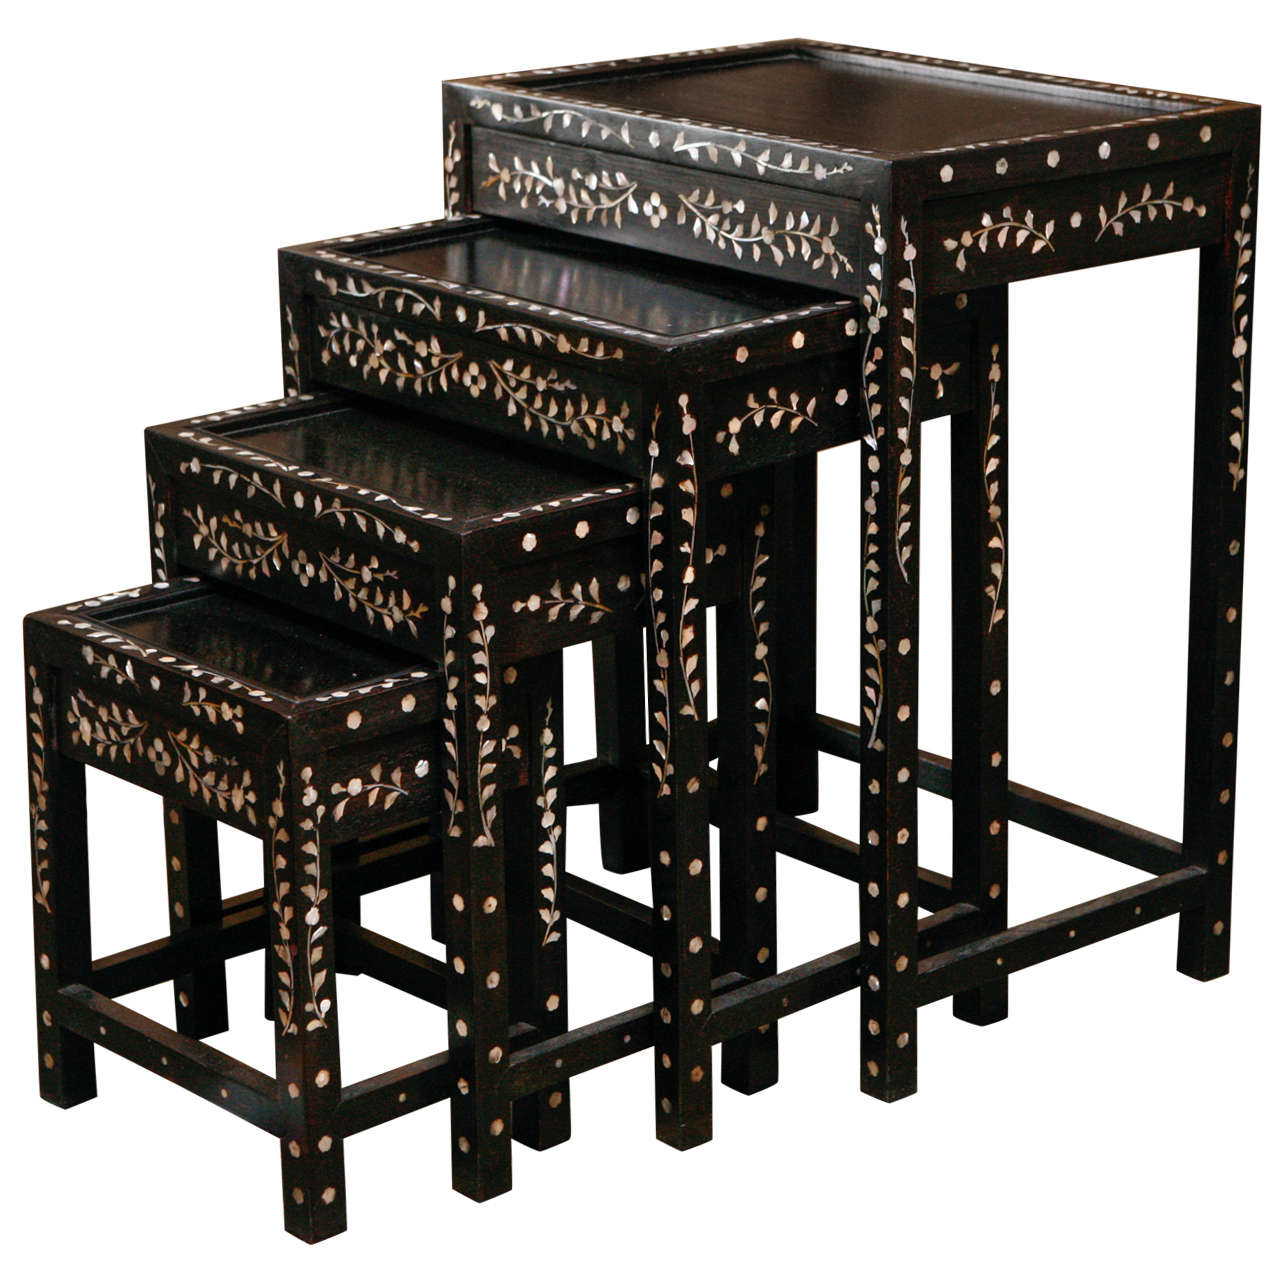 Nesting Tables With Mother Of Pearl Inlay For